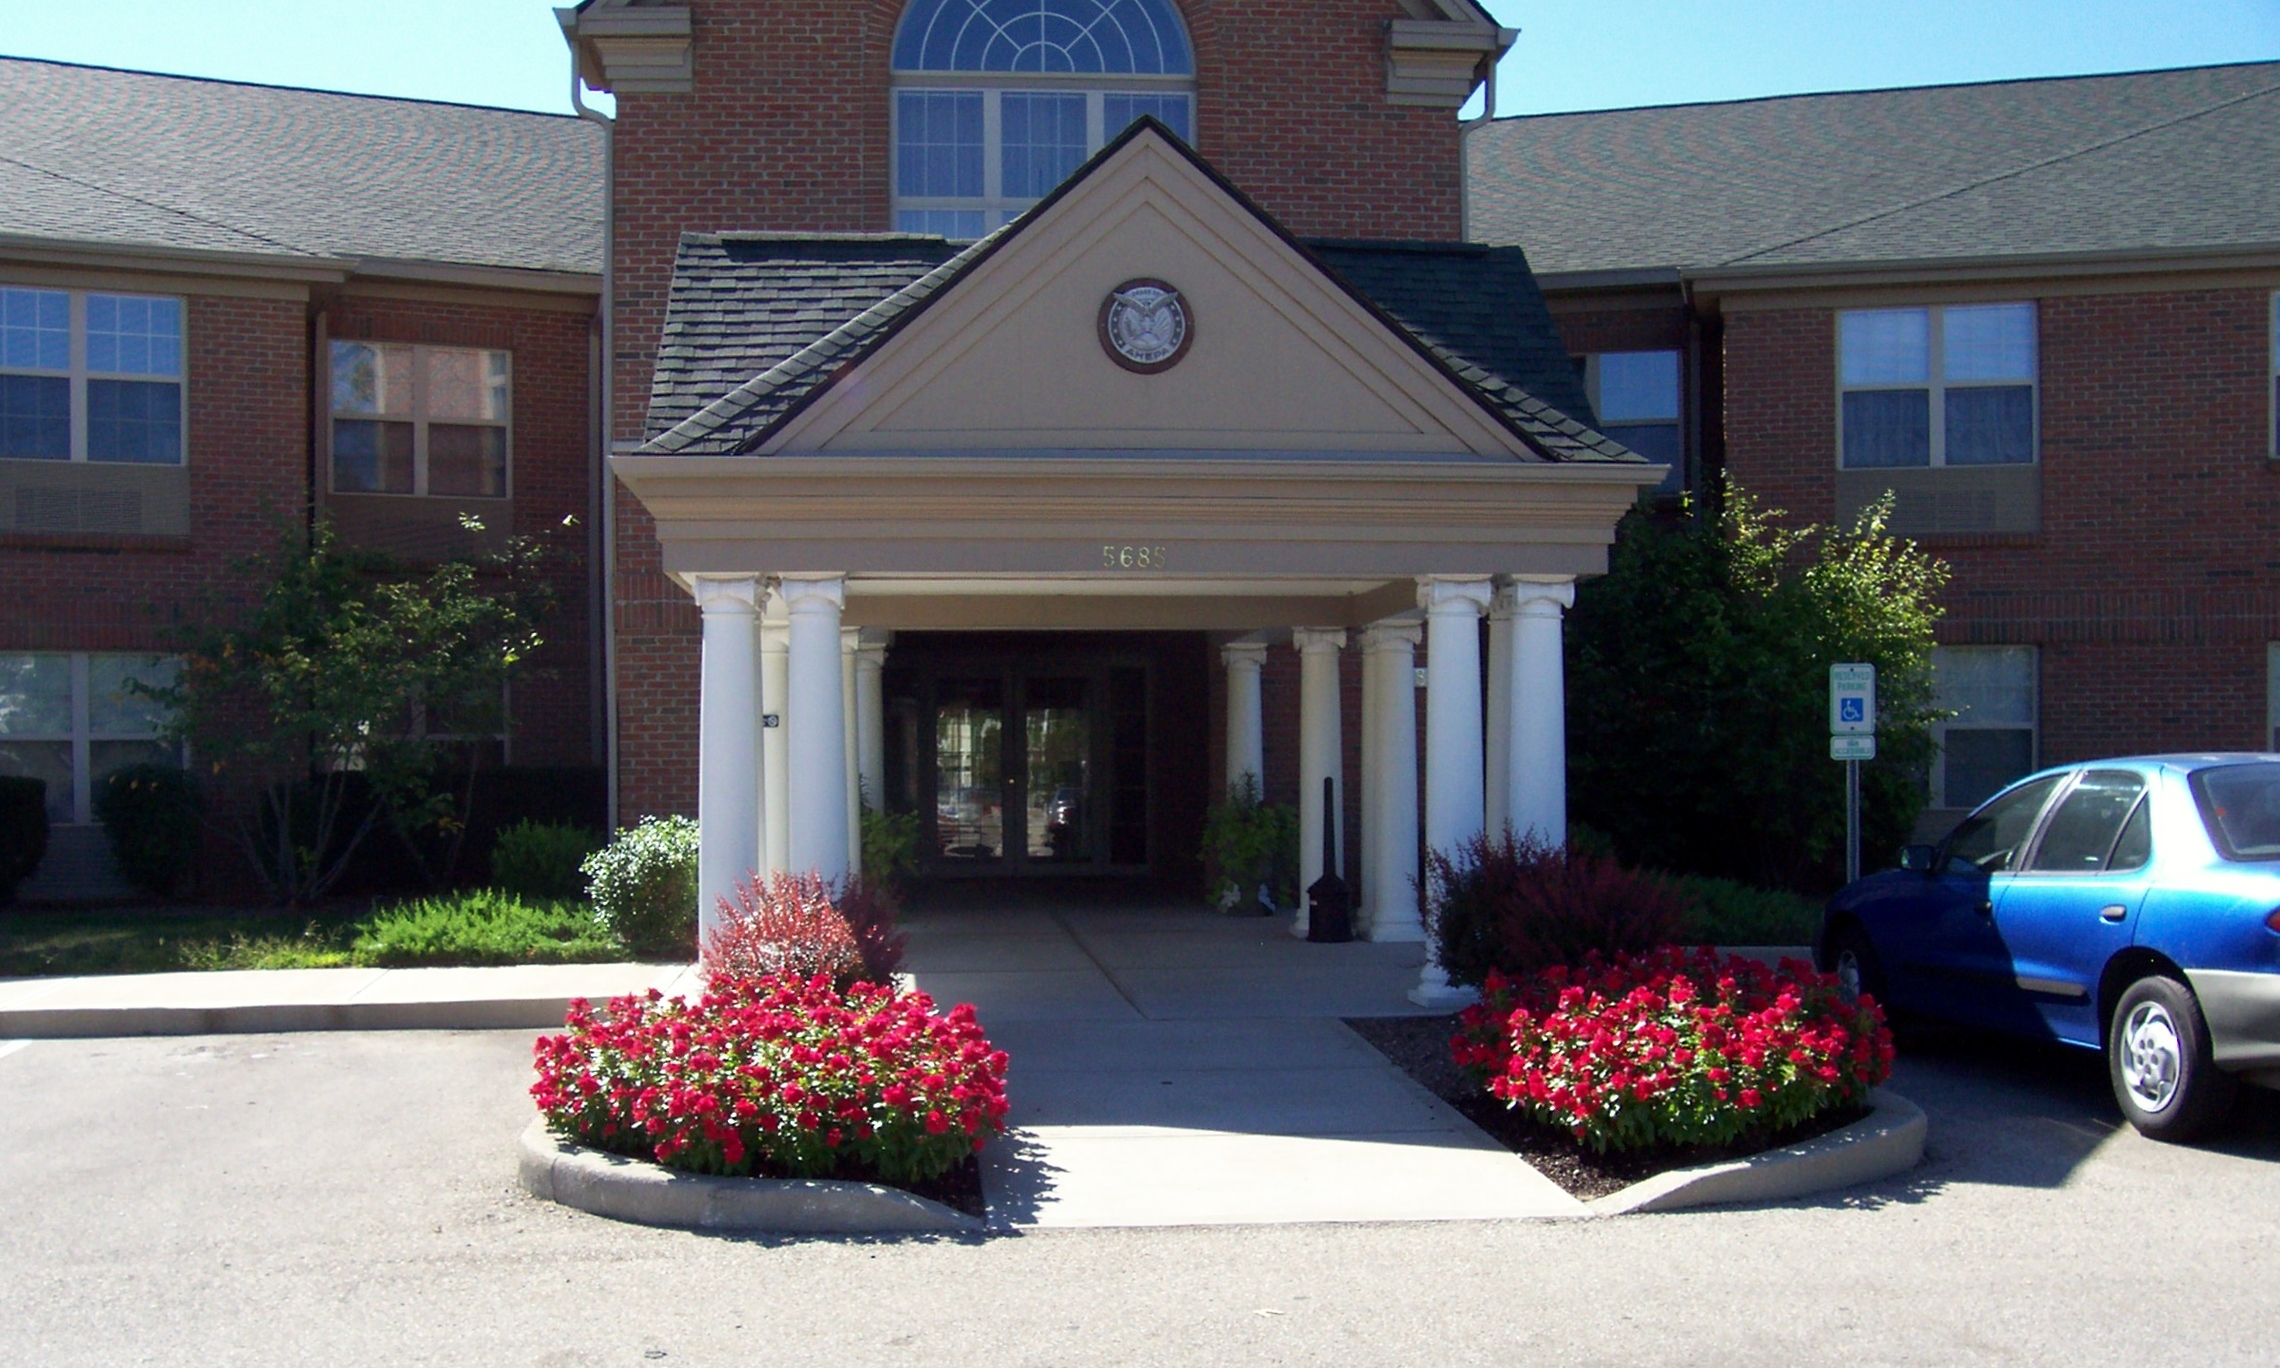 AHEPA 232 III Senior Apartments - 5685 Eden Village DriveIndianapolis, IN 46254(317) 291-5729 TTY: (800) 325-2223 or 711 (English)TTY: (800) 743-4869 or 711 (Español)info@ahepahousing.org